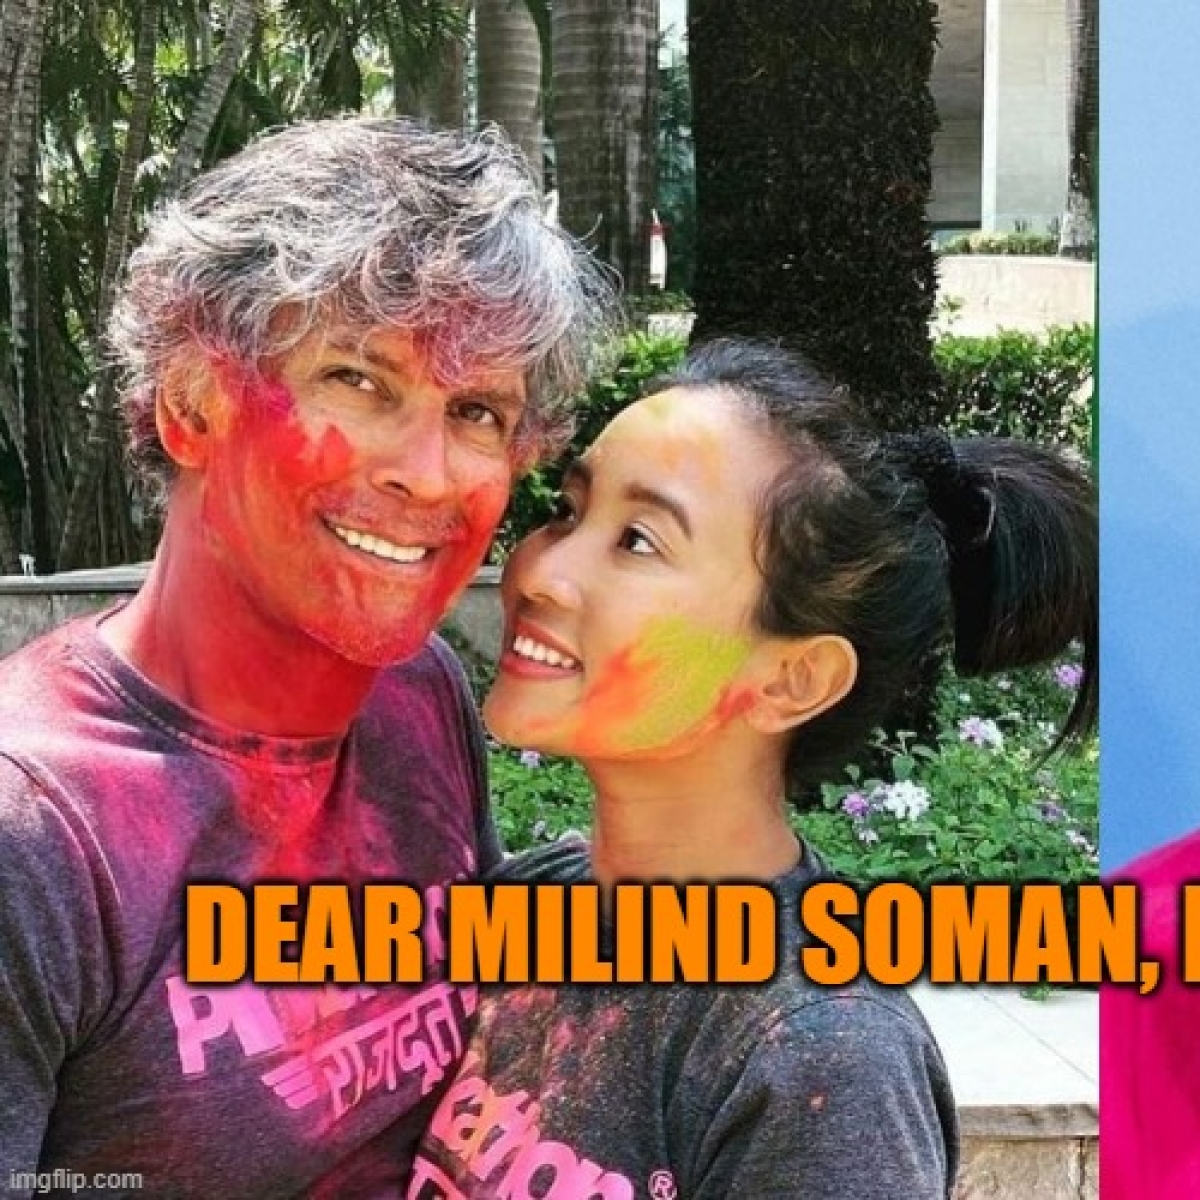 Dear Milind Soman, you are cancelled for swimming with Sanghis at the age of 10, please pick up your shorts and leave